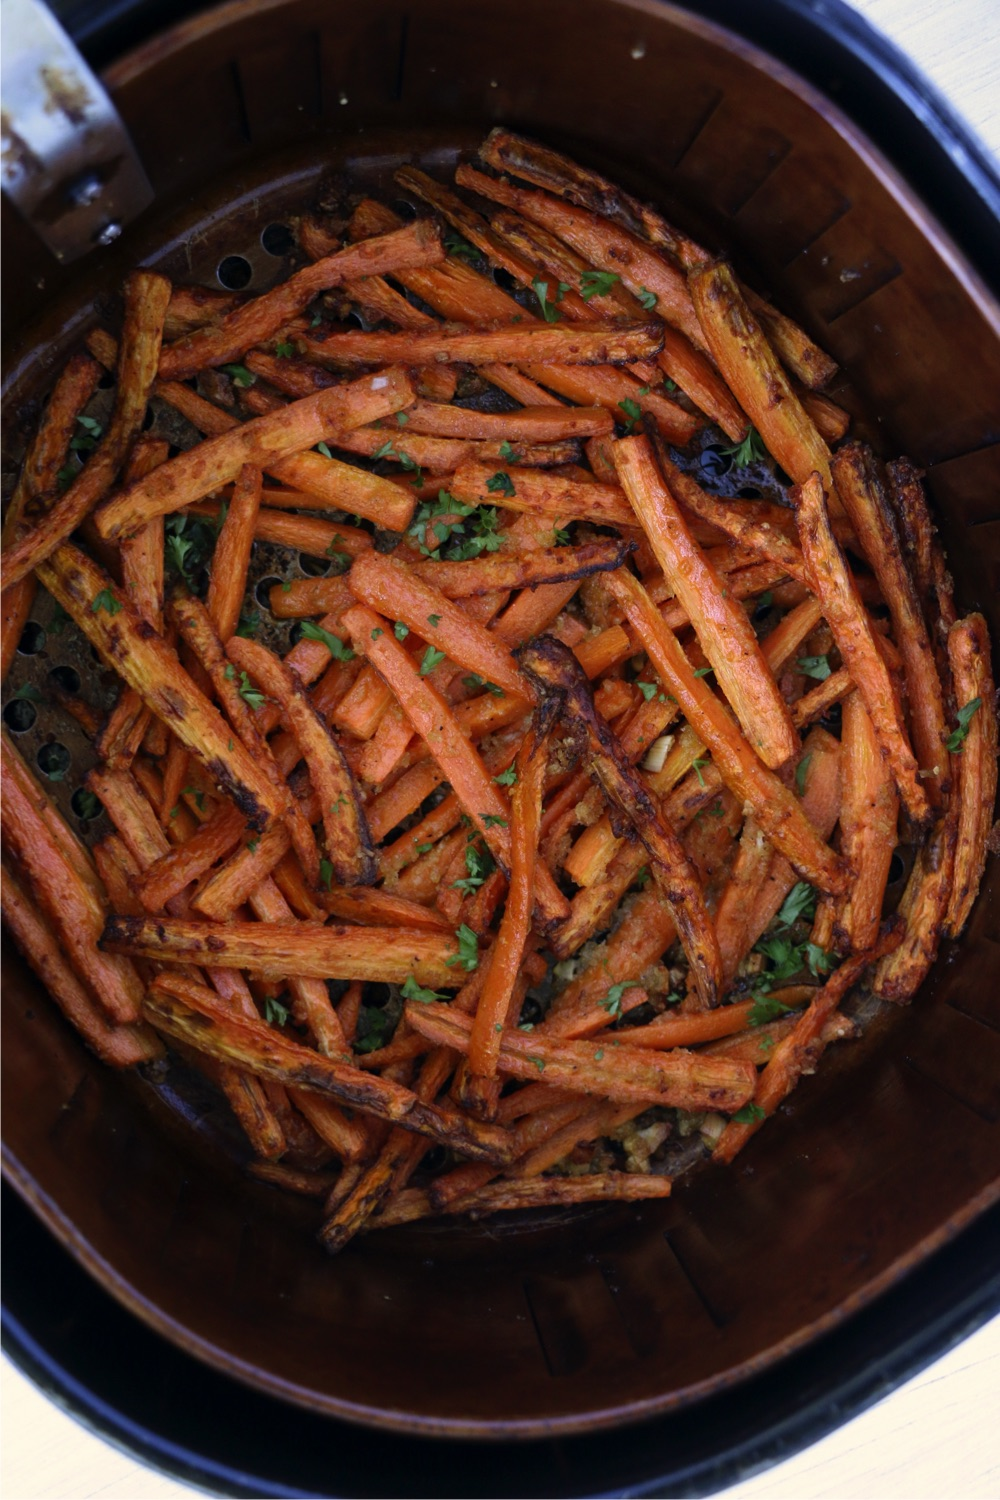 Cooked carrot fries in air fryer basket